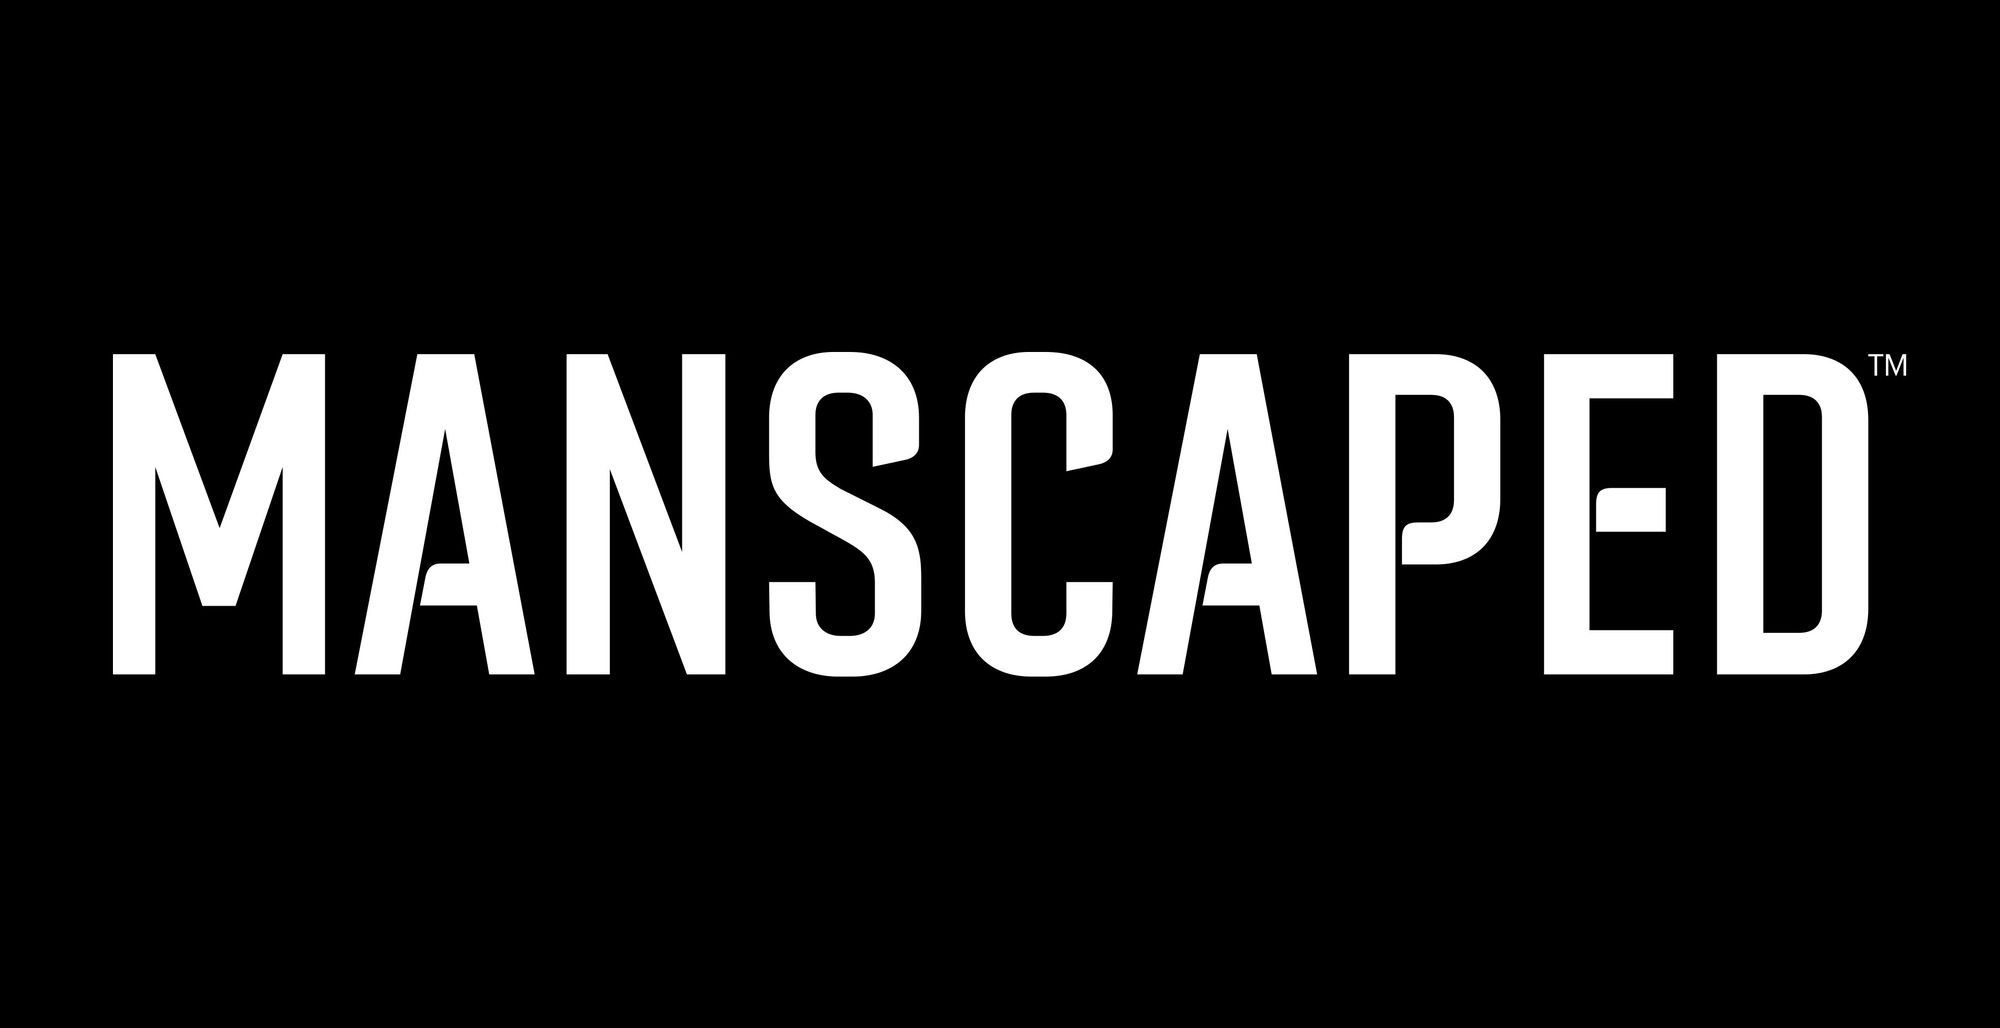 Is The Manscaped™ Crop Reviver® Edible?